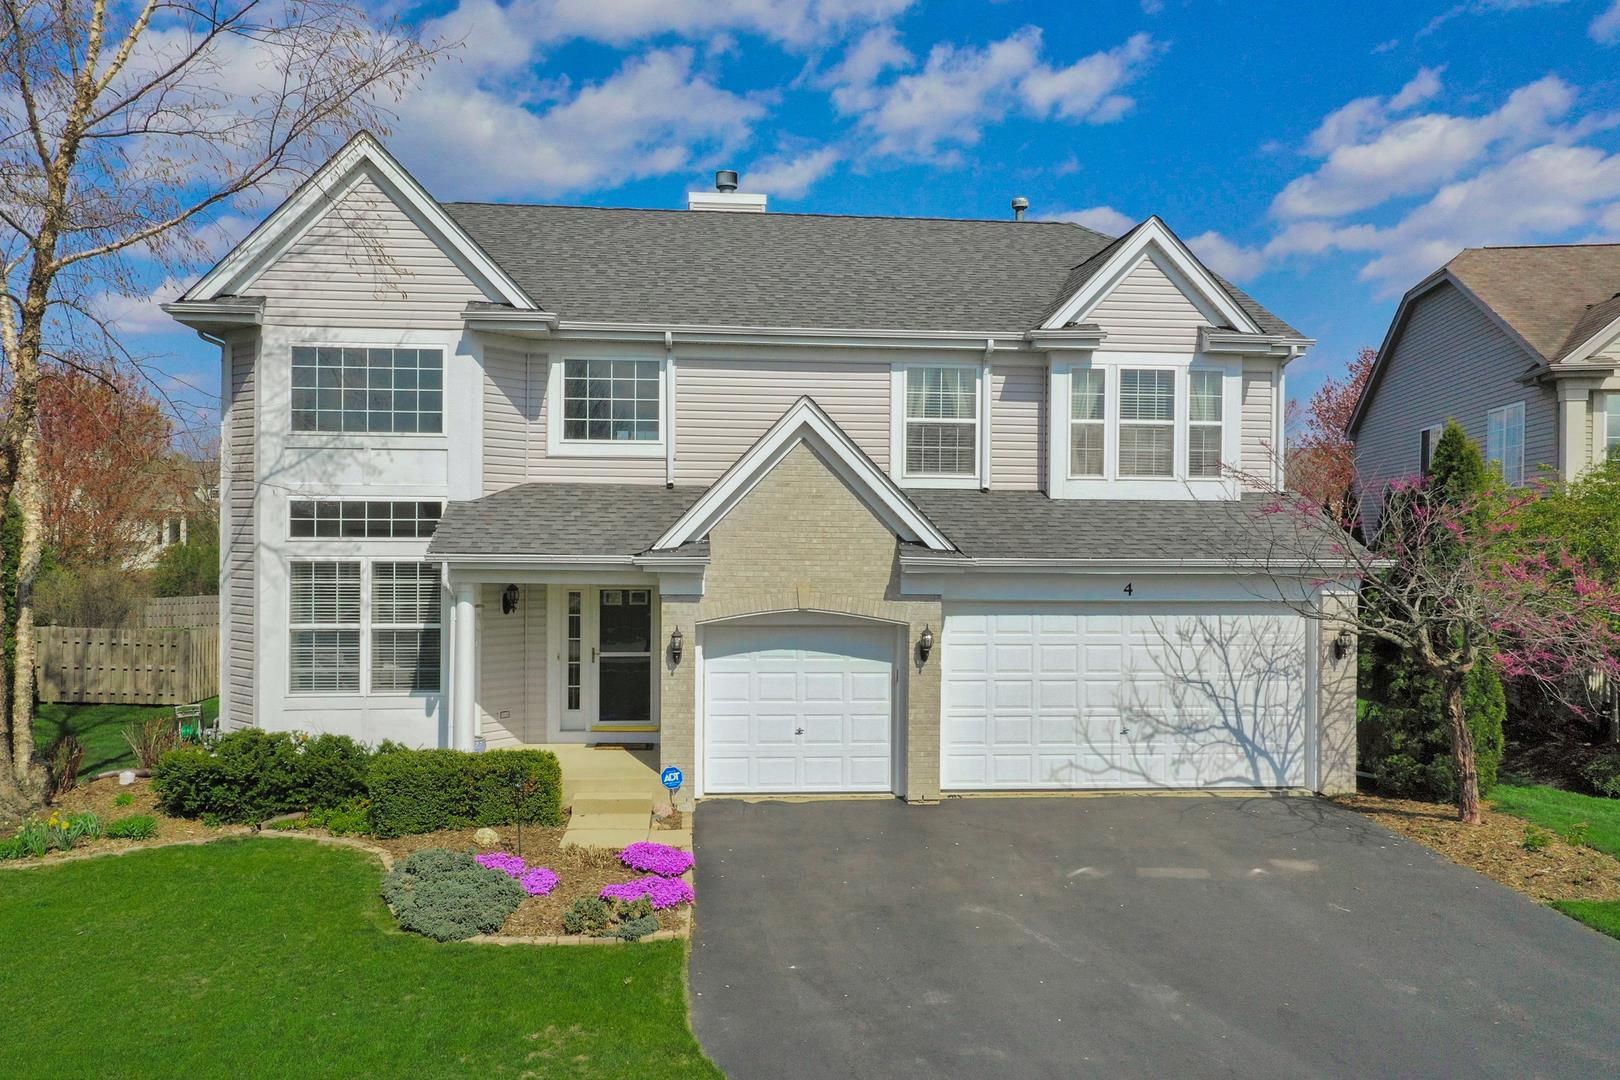 4 PROVIDENCE Court, Cary, IL 60013 - #: 11064910